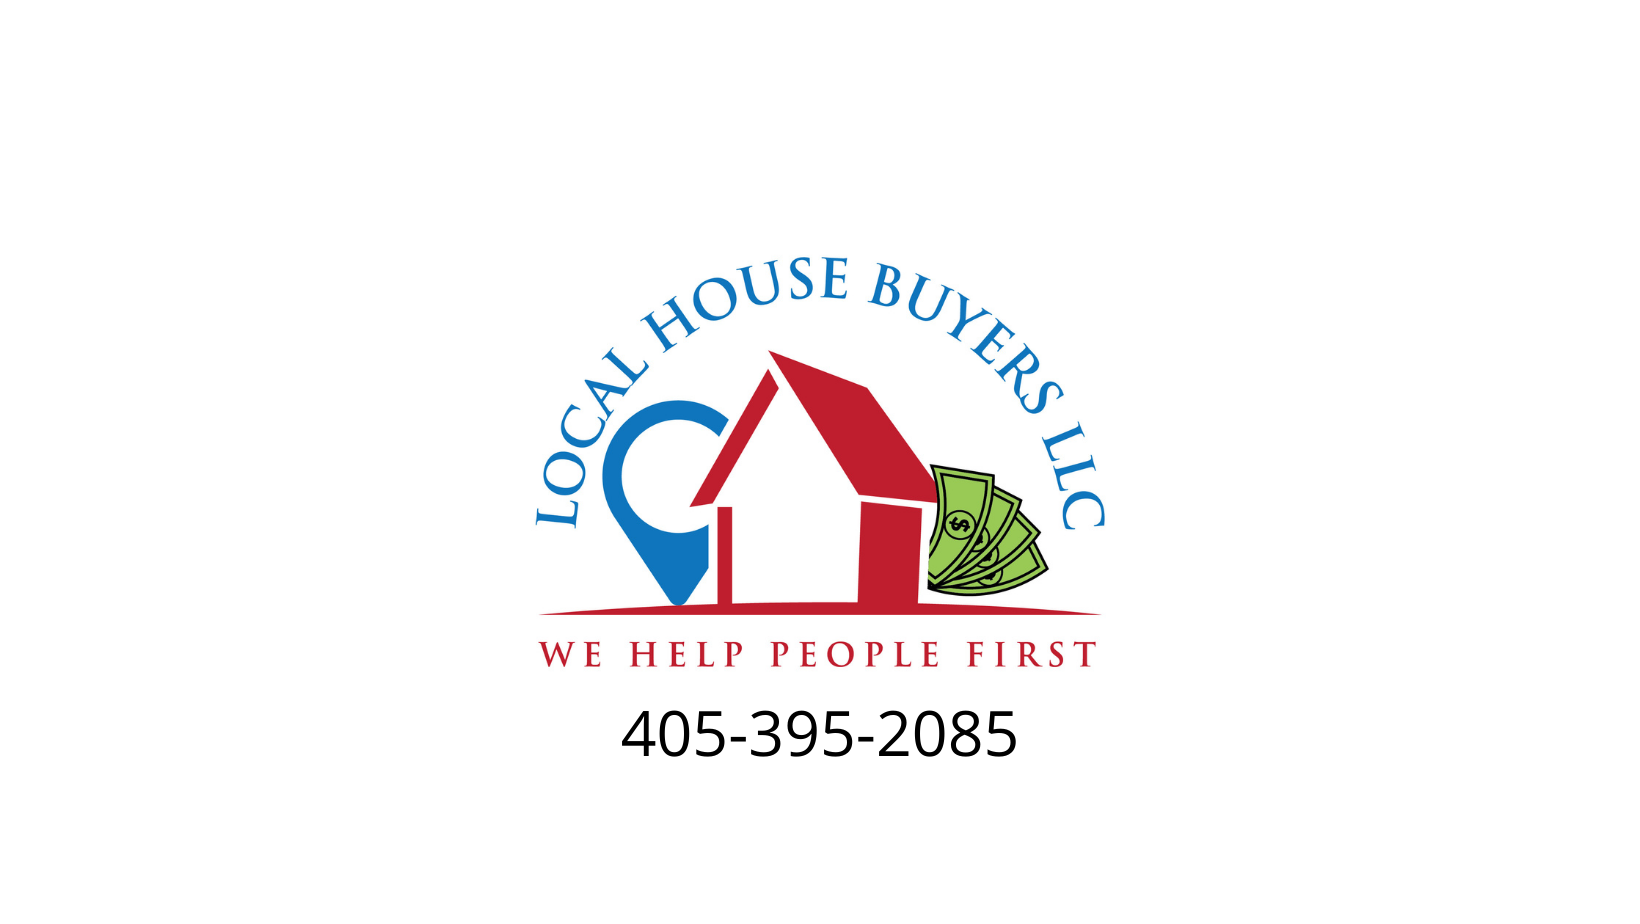 Local House Buyers  logo